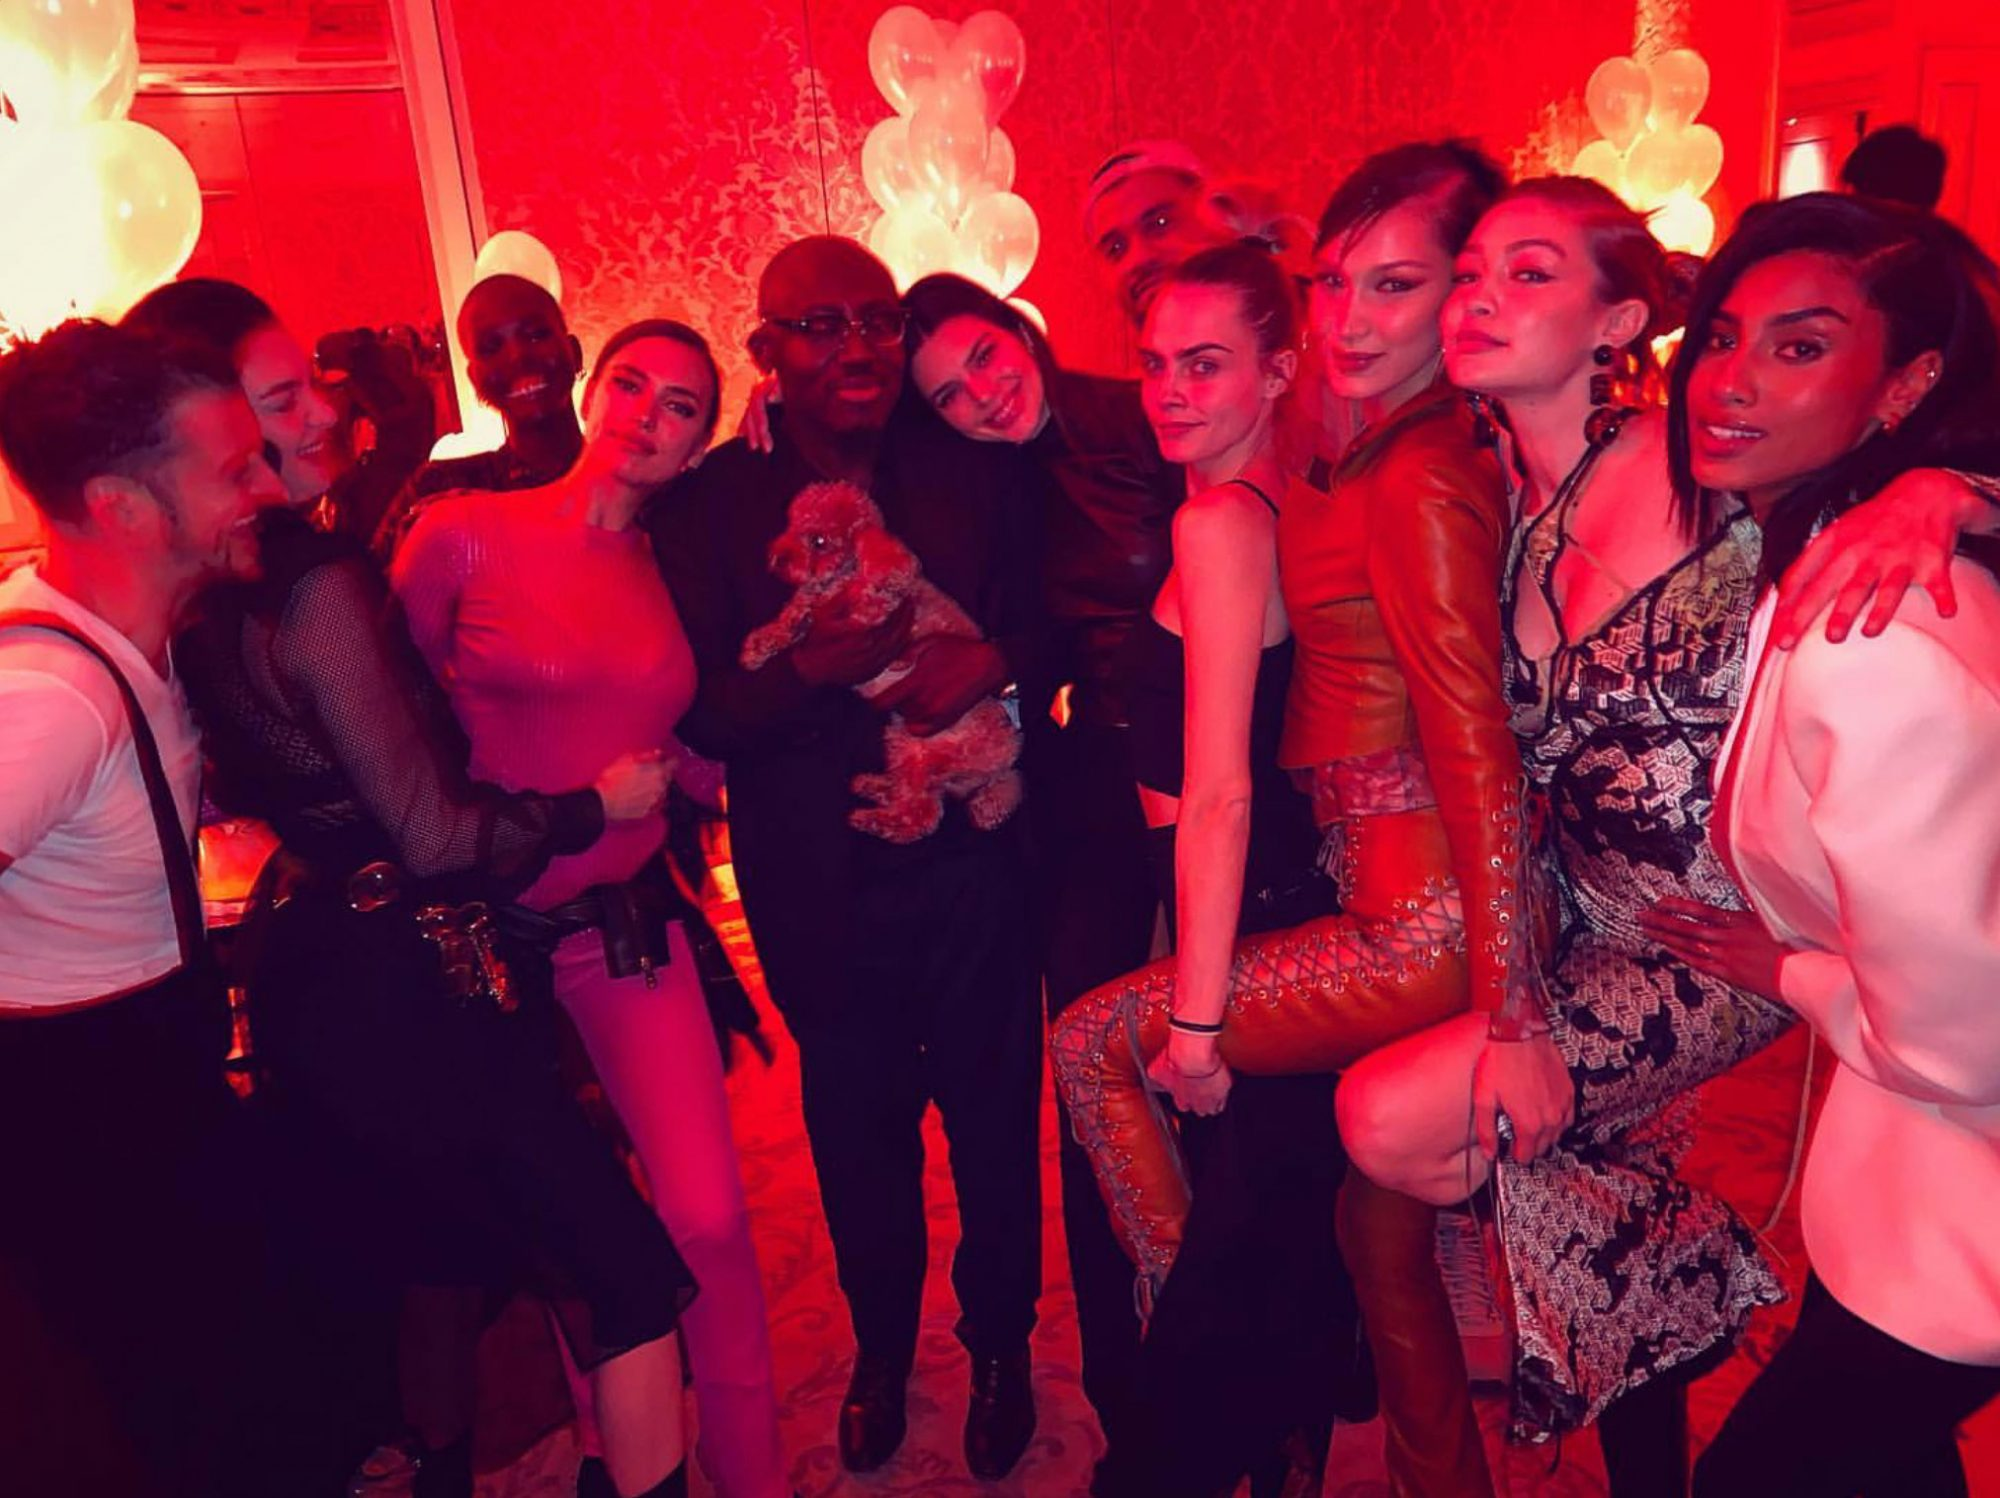 Edward Enninful's birthday party